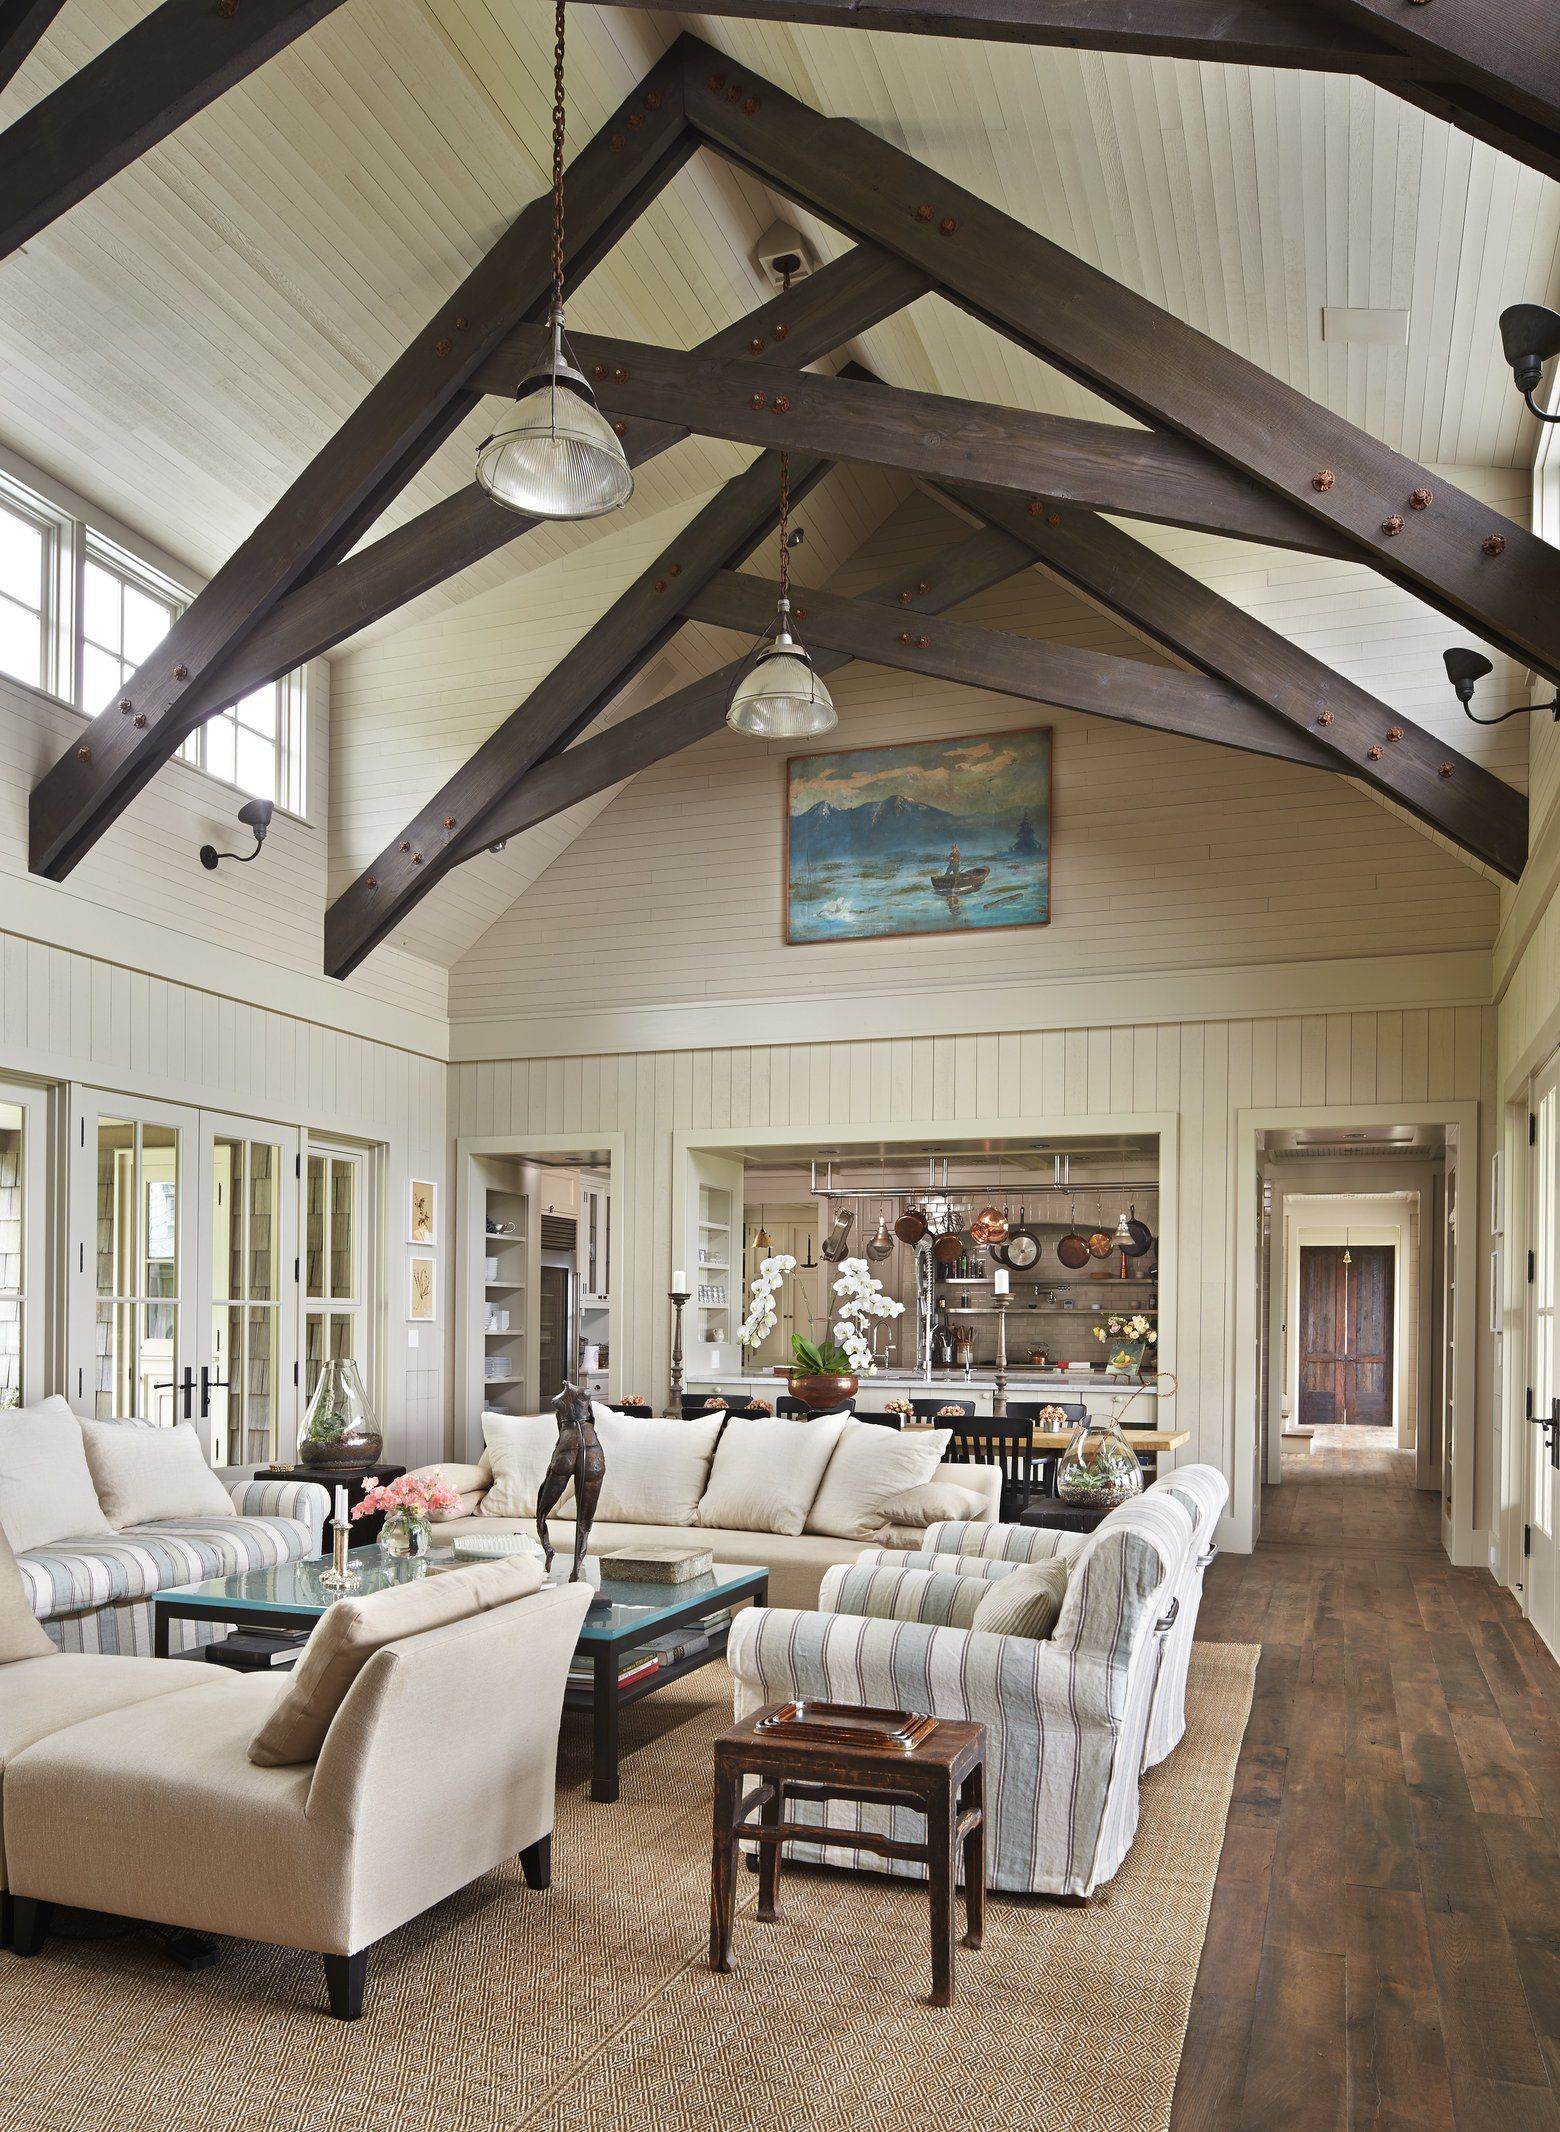 Room In Attic Truss Design: Exposed Scissor Trusses Rise In The Great Room. The Dining